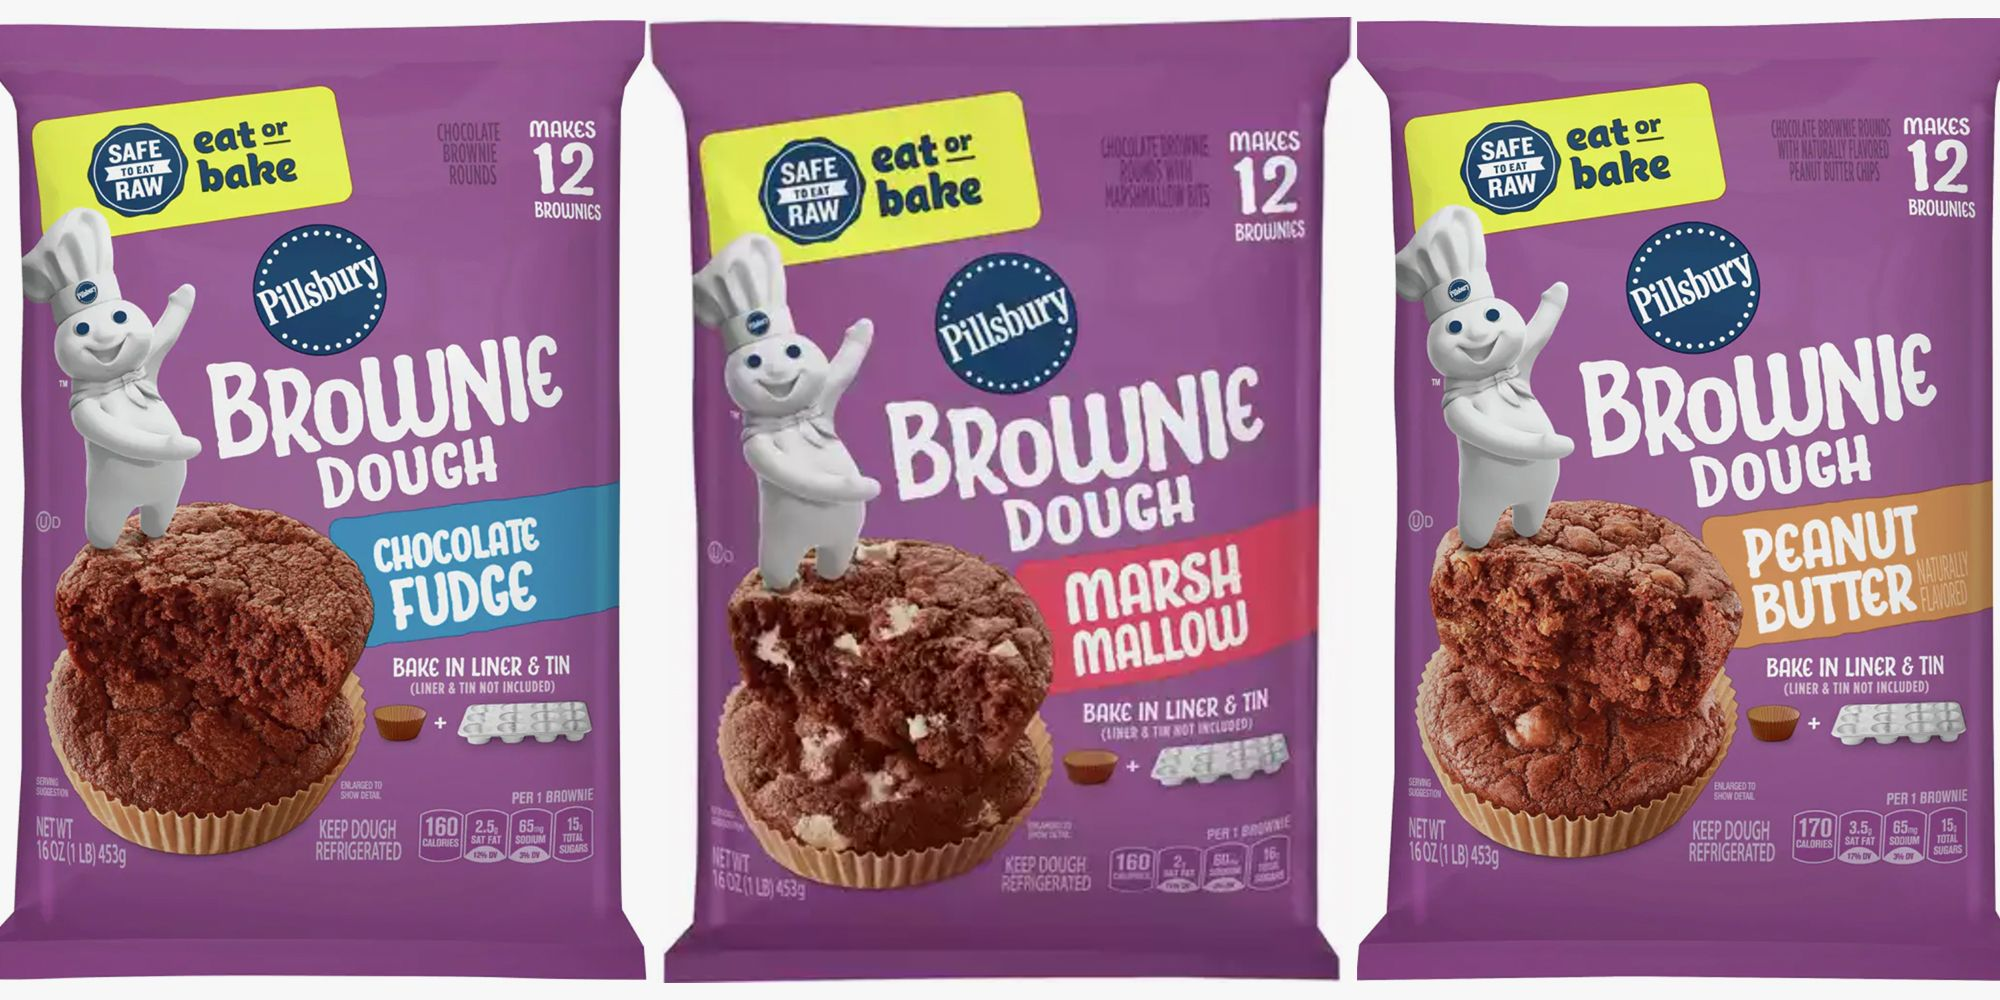 Pillsbury Has New Brownie Dough That's Protected to Eat